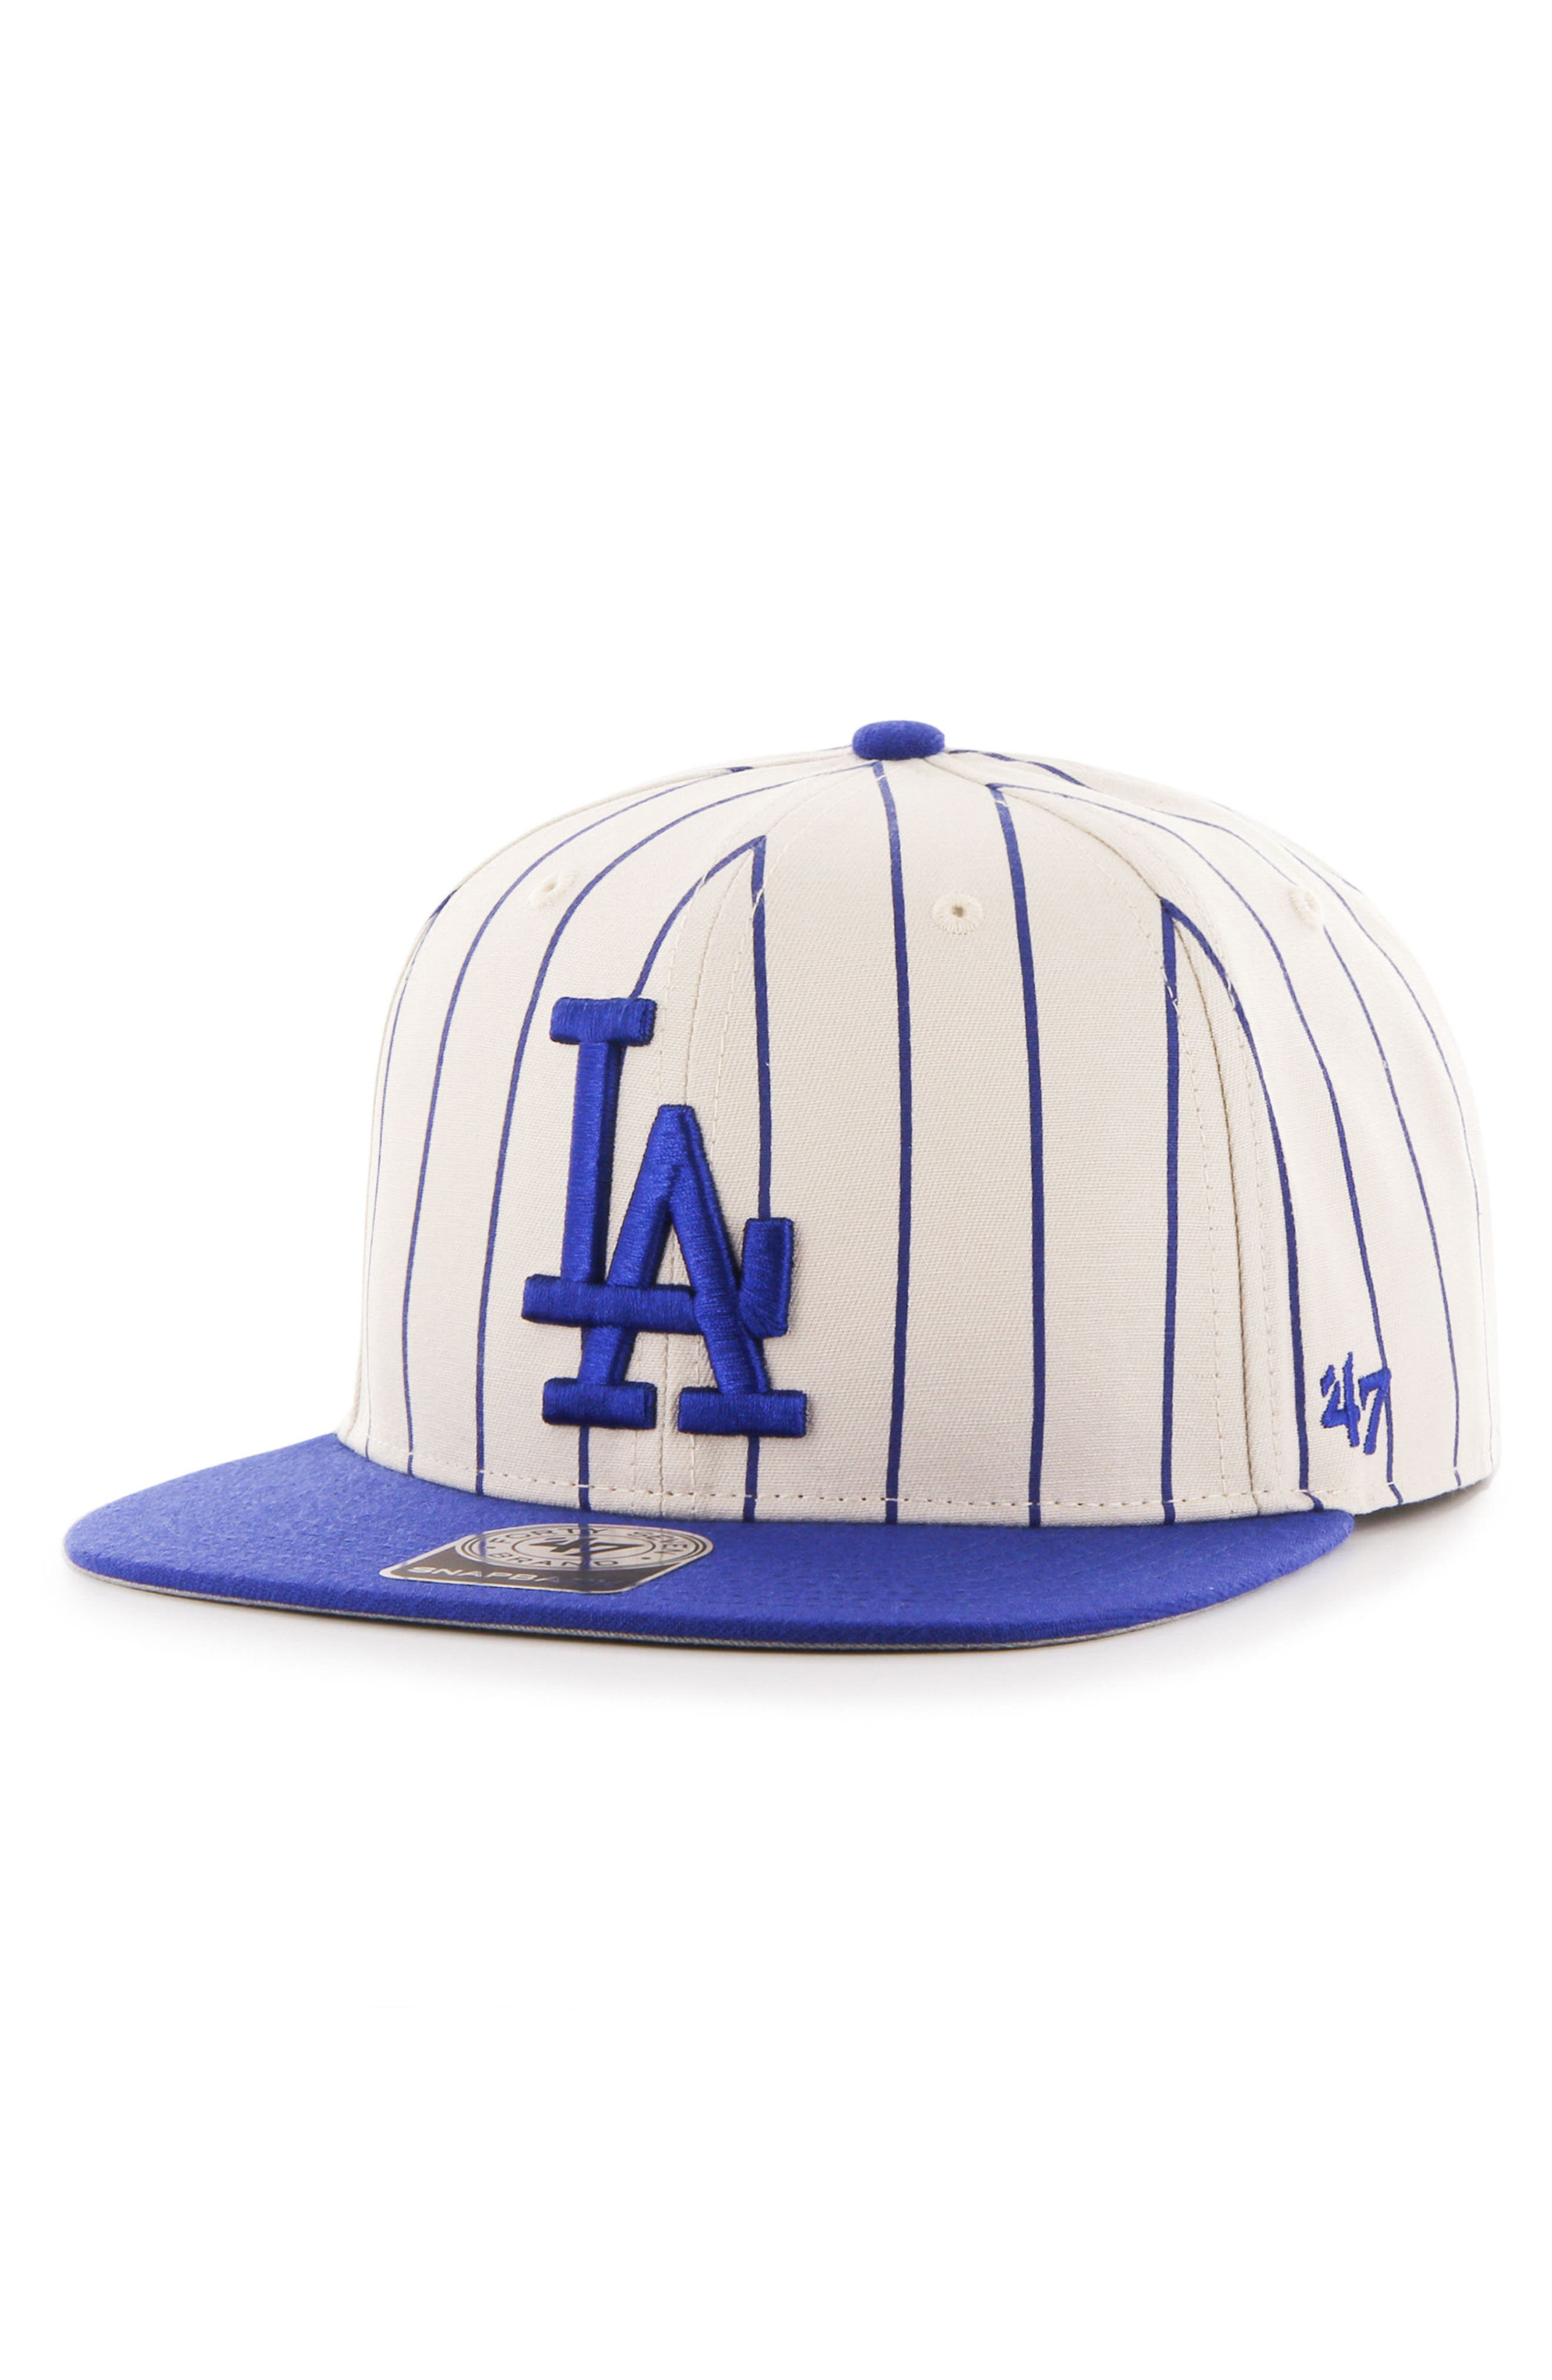 LA Dodgers Pinstripe Baseball Cap,                             Main thumbnail 1, color,                             100